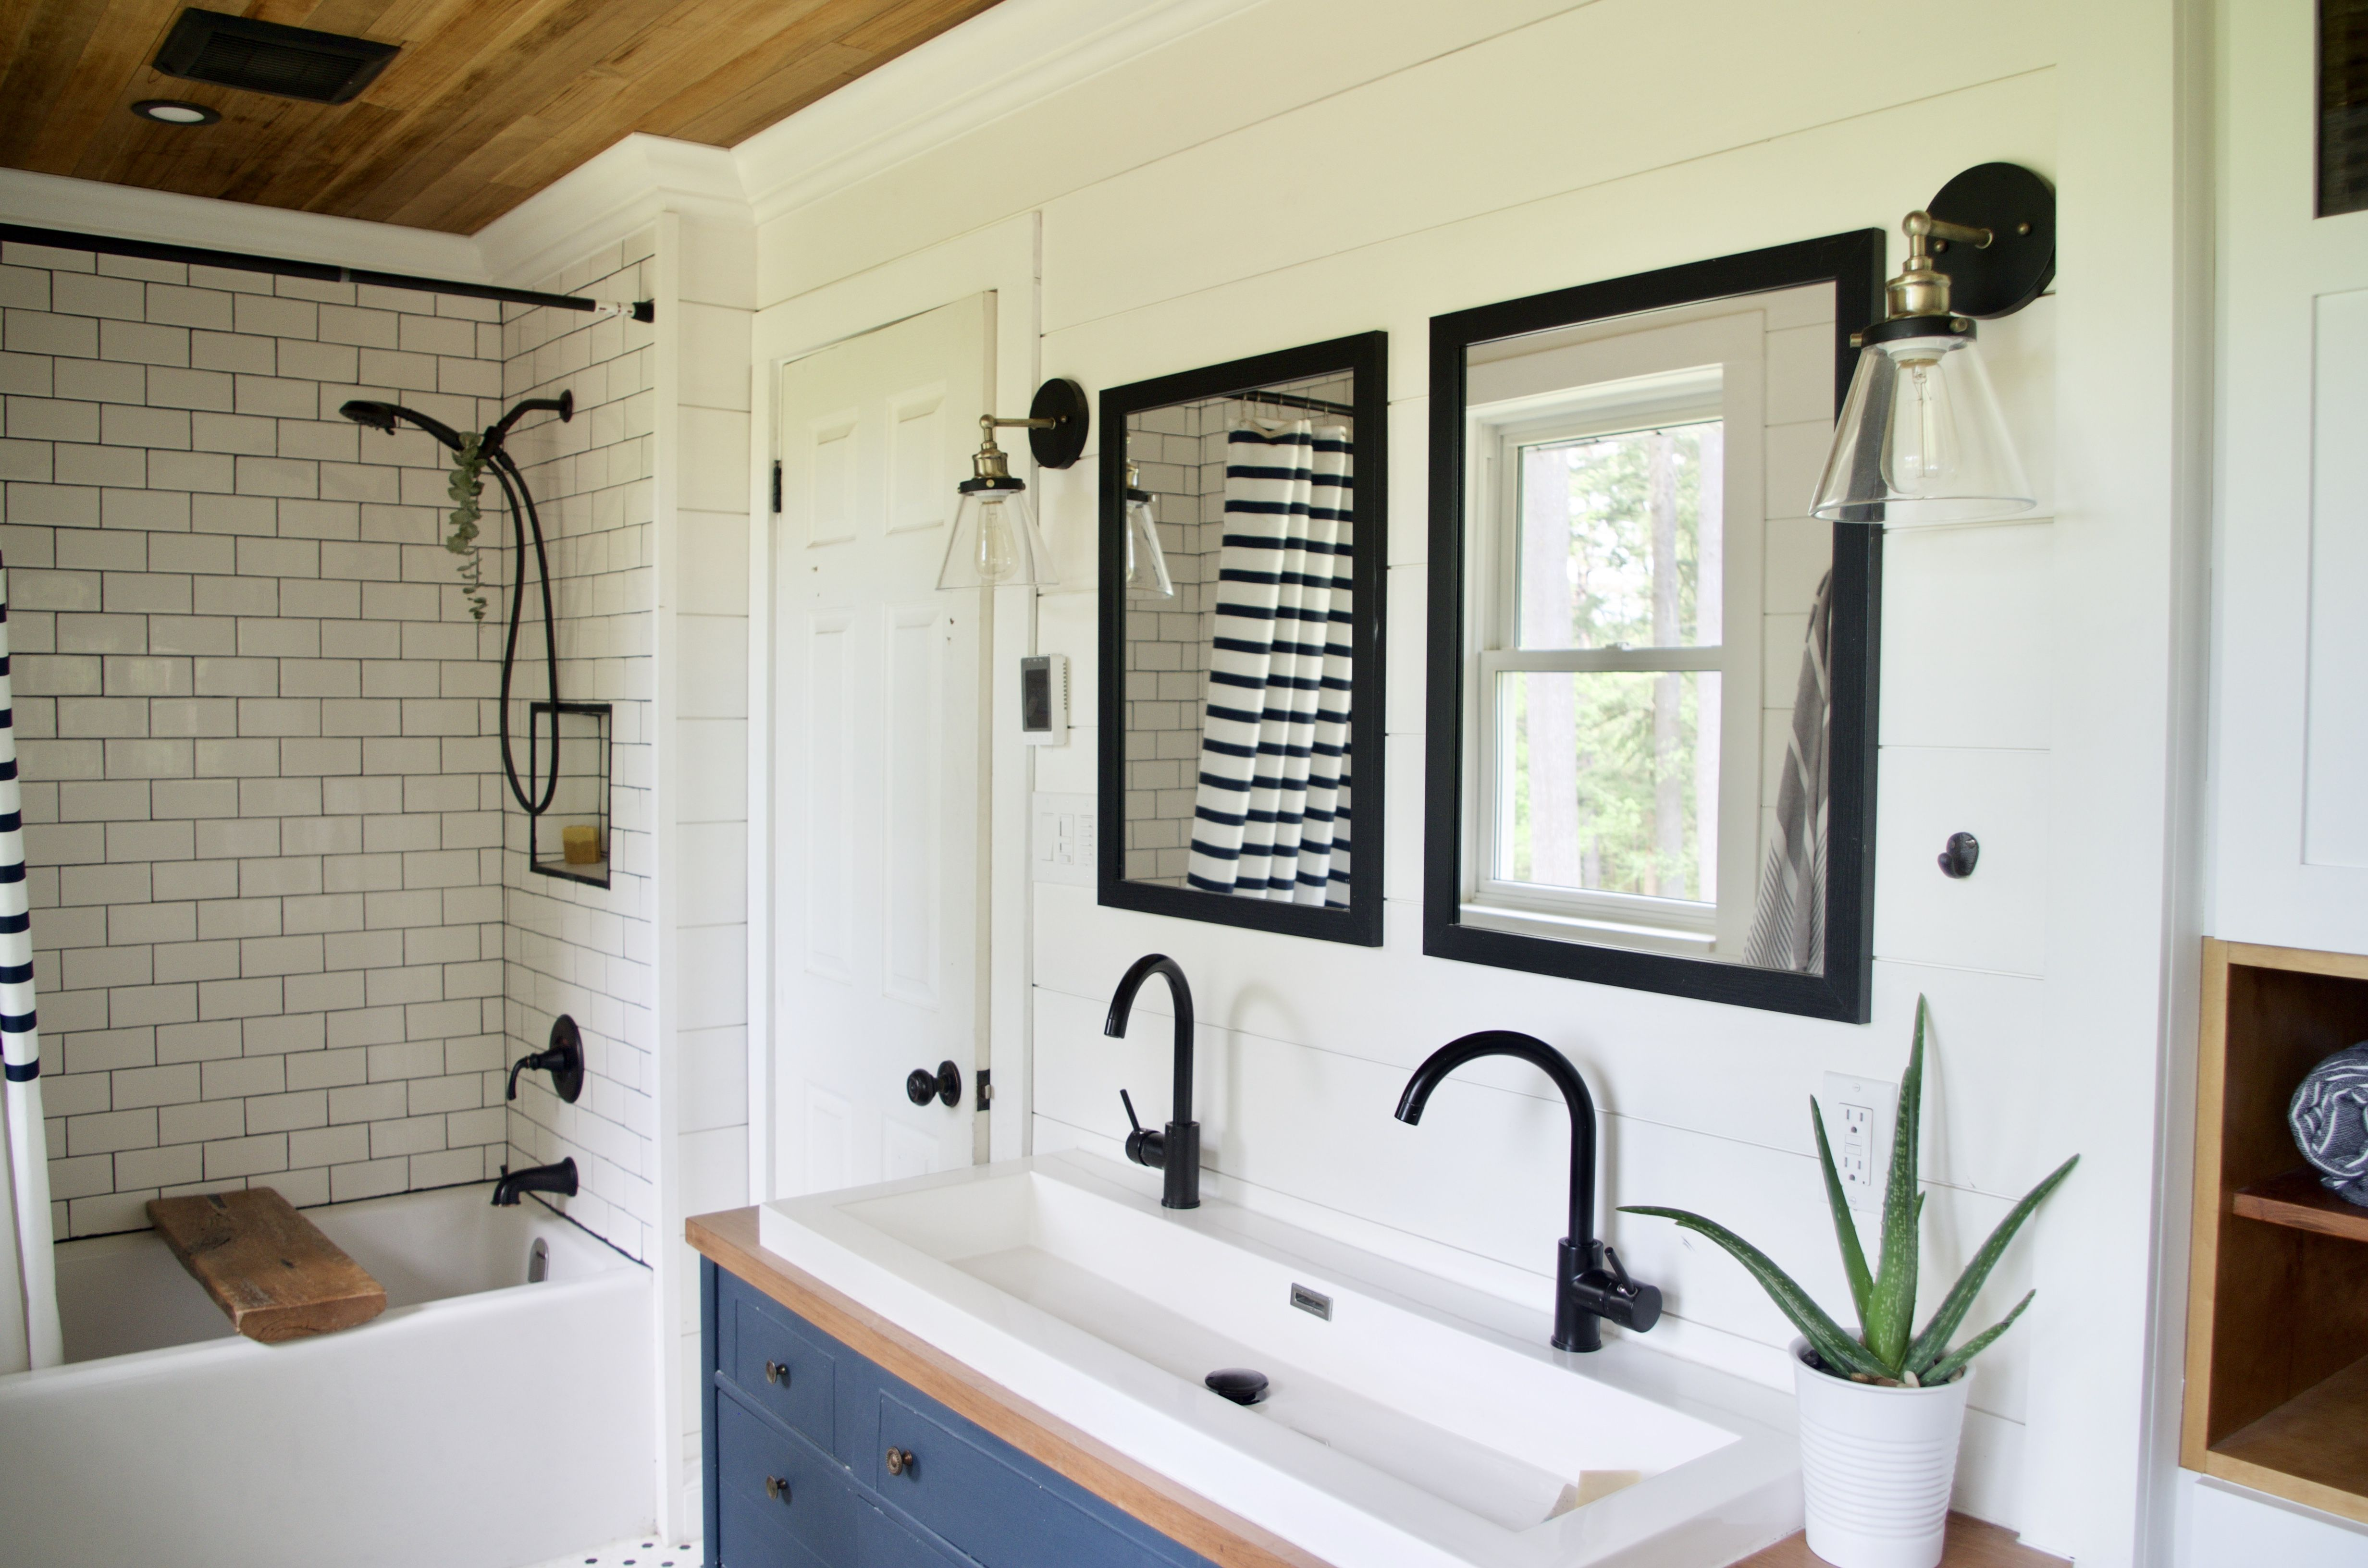 Double Mirrors Trough Style Sink With Two Faucets With Images